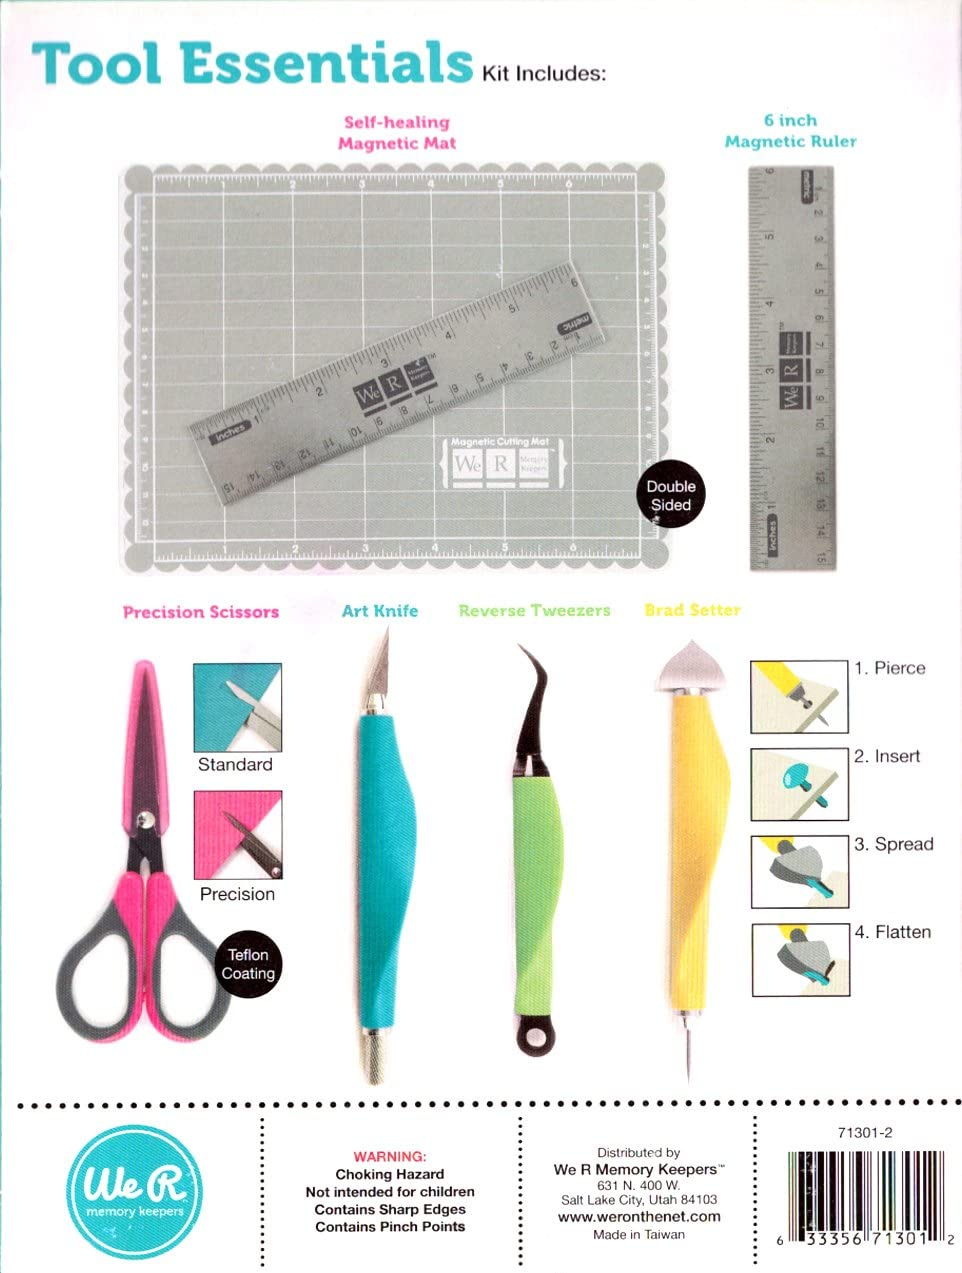 Crafter/'s Essentials /'Brad Setter/' Scrapbooking Tool WRMK We R Memory Keepers